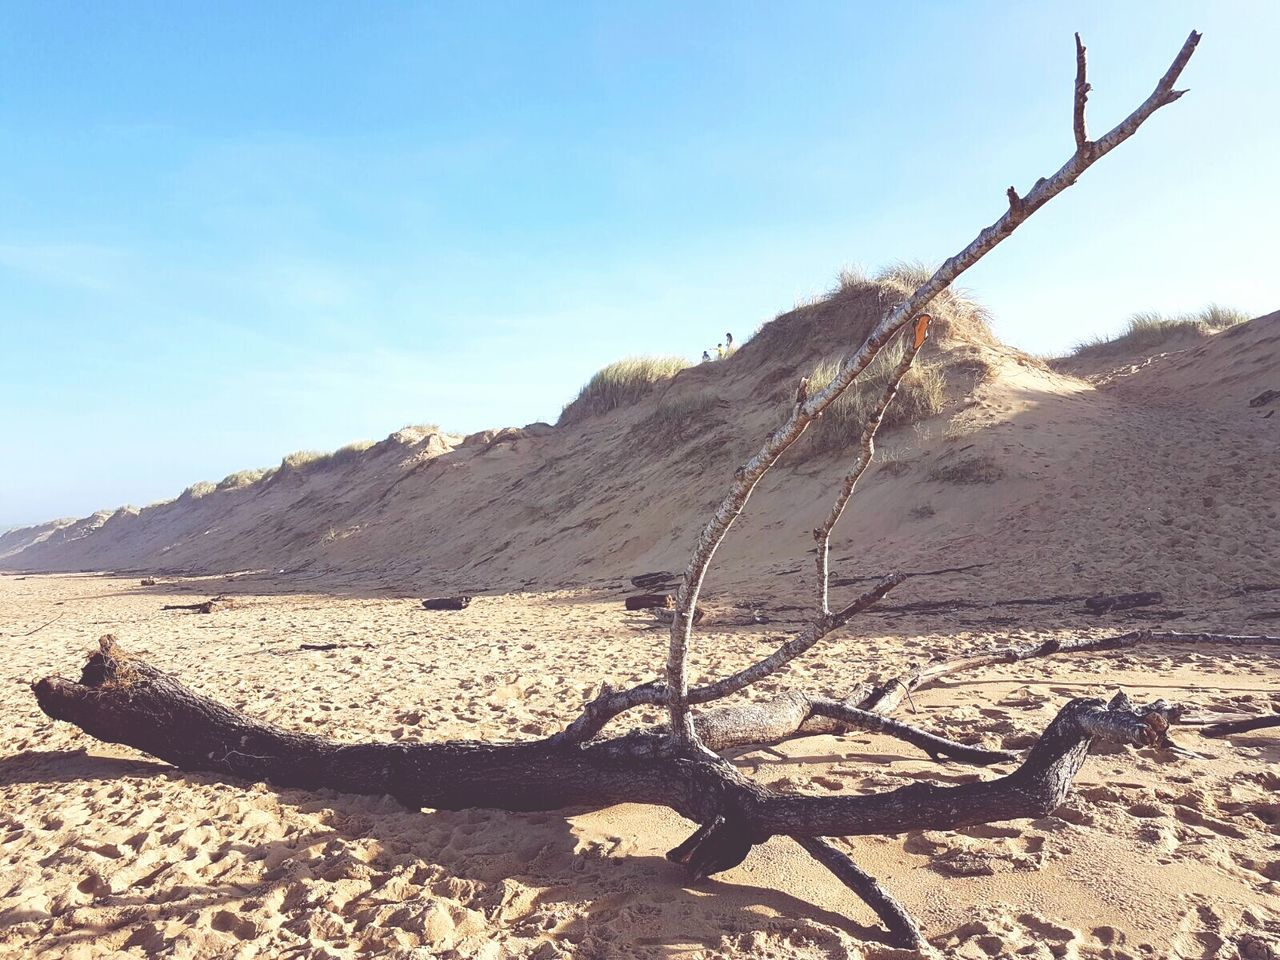 Tronco Fallen Tree Sand Arid Climate Beauty In Nature Dry Land Dunas Deserts Around The World Desierto Arbol Caido Landscape Dramatic Sky Sunny Day